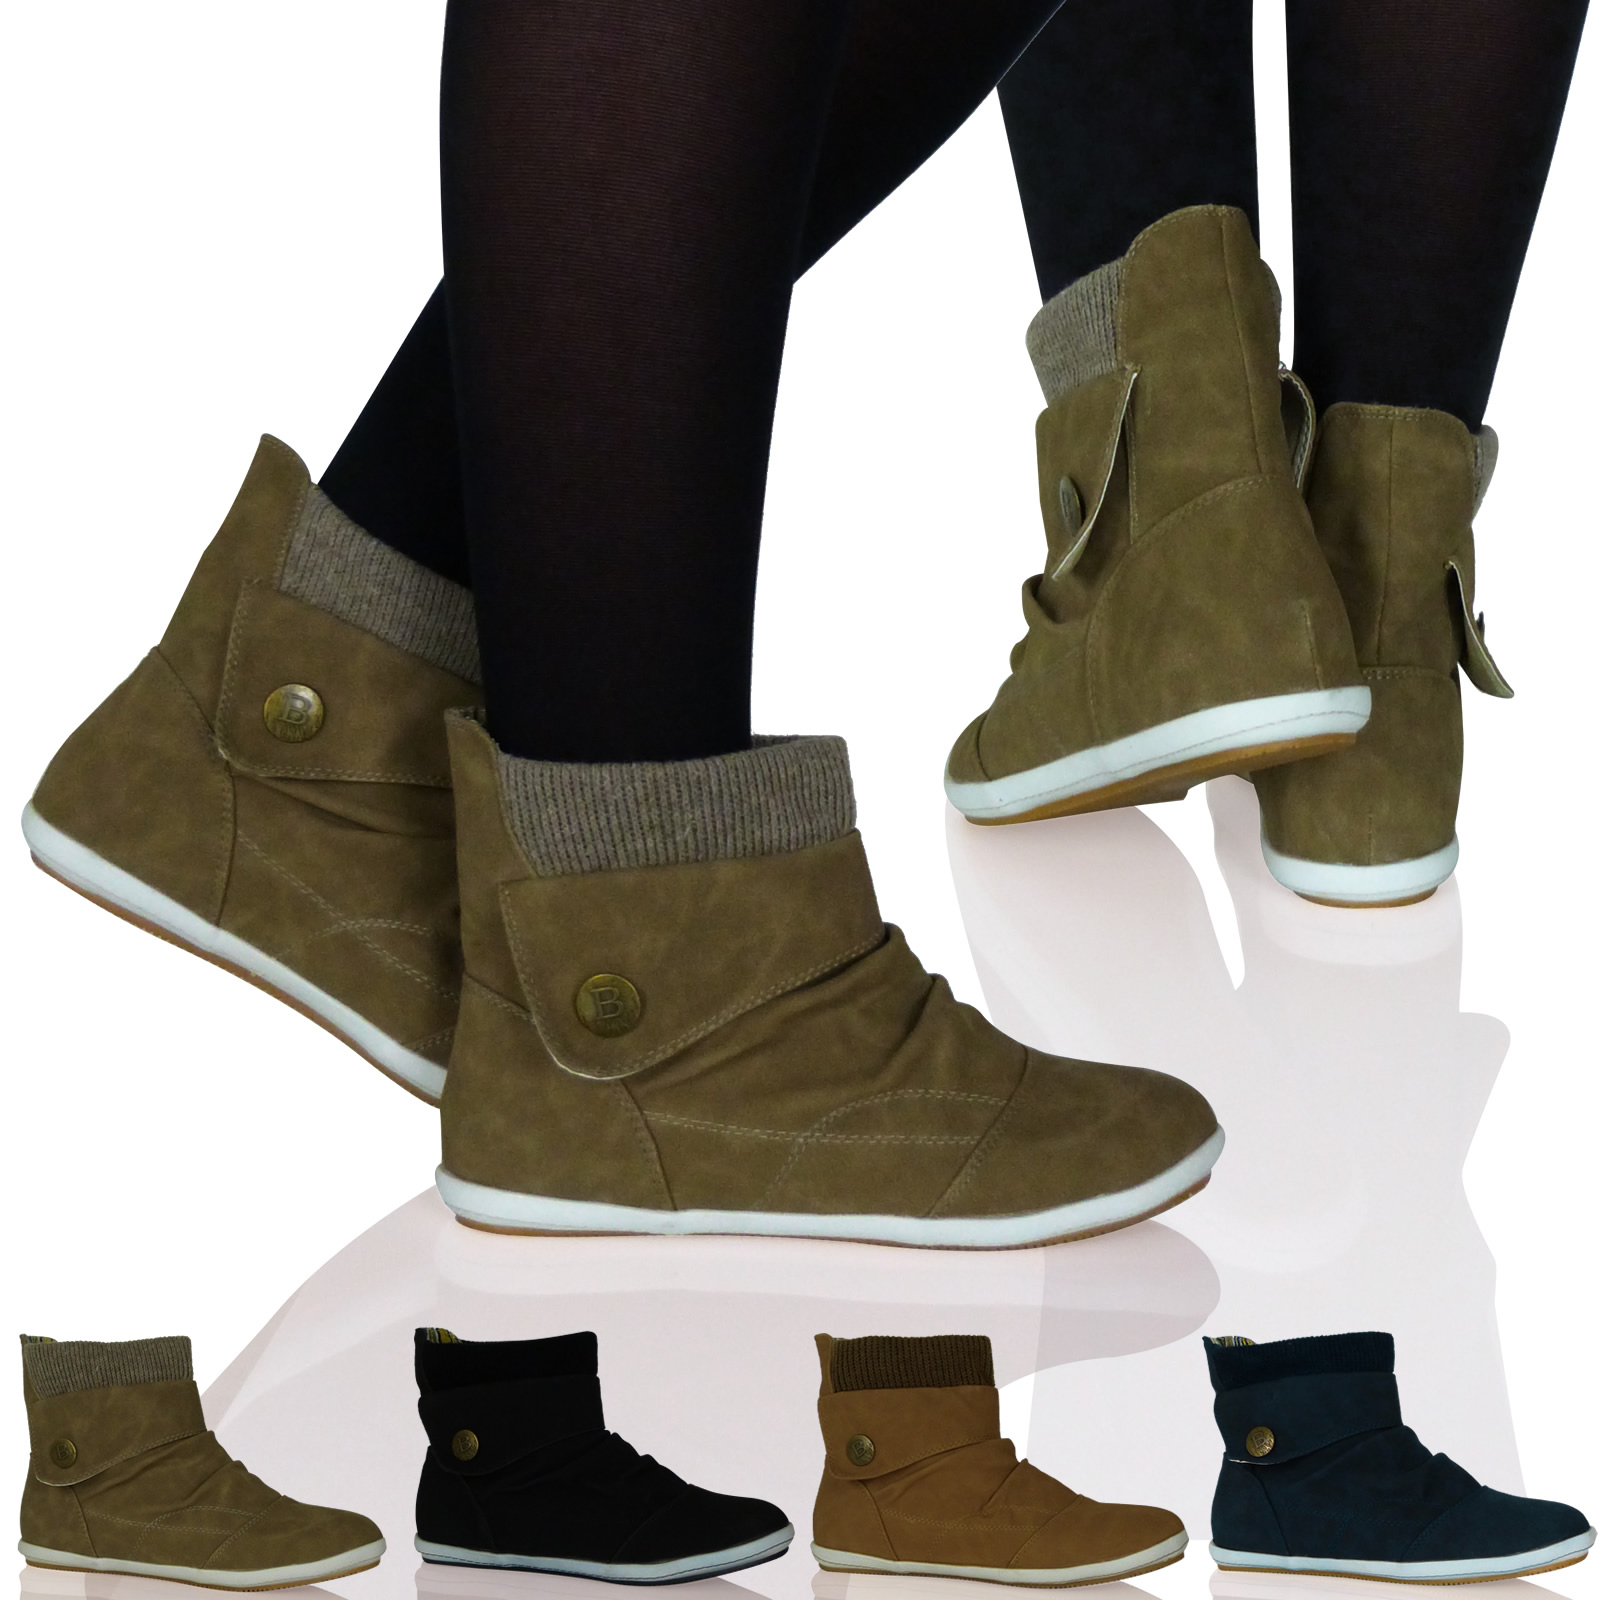 A wardrobe staple, ankle boots will see you through the season! Heels or flats, this versatile design in classic leather or luxurious suede makes a perfect off-duty look. Available in an array of colours, pair the black or brown with denims, and an across the body bag for an understated style.